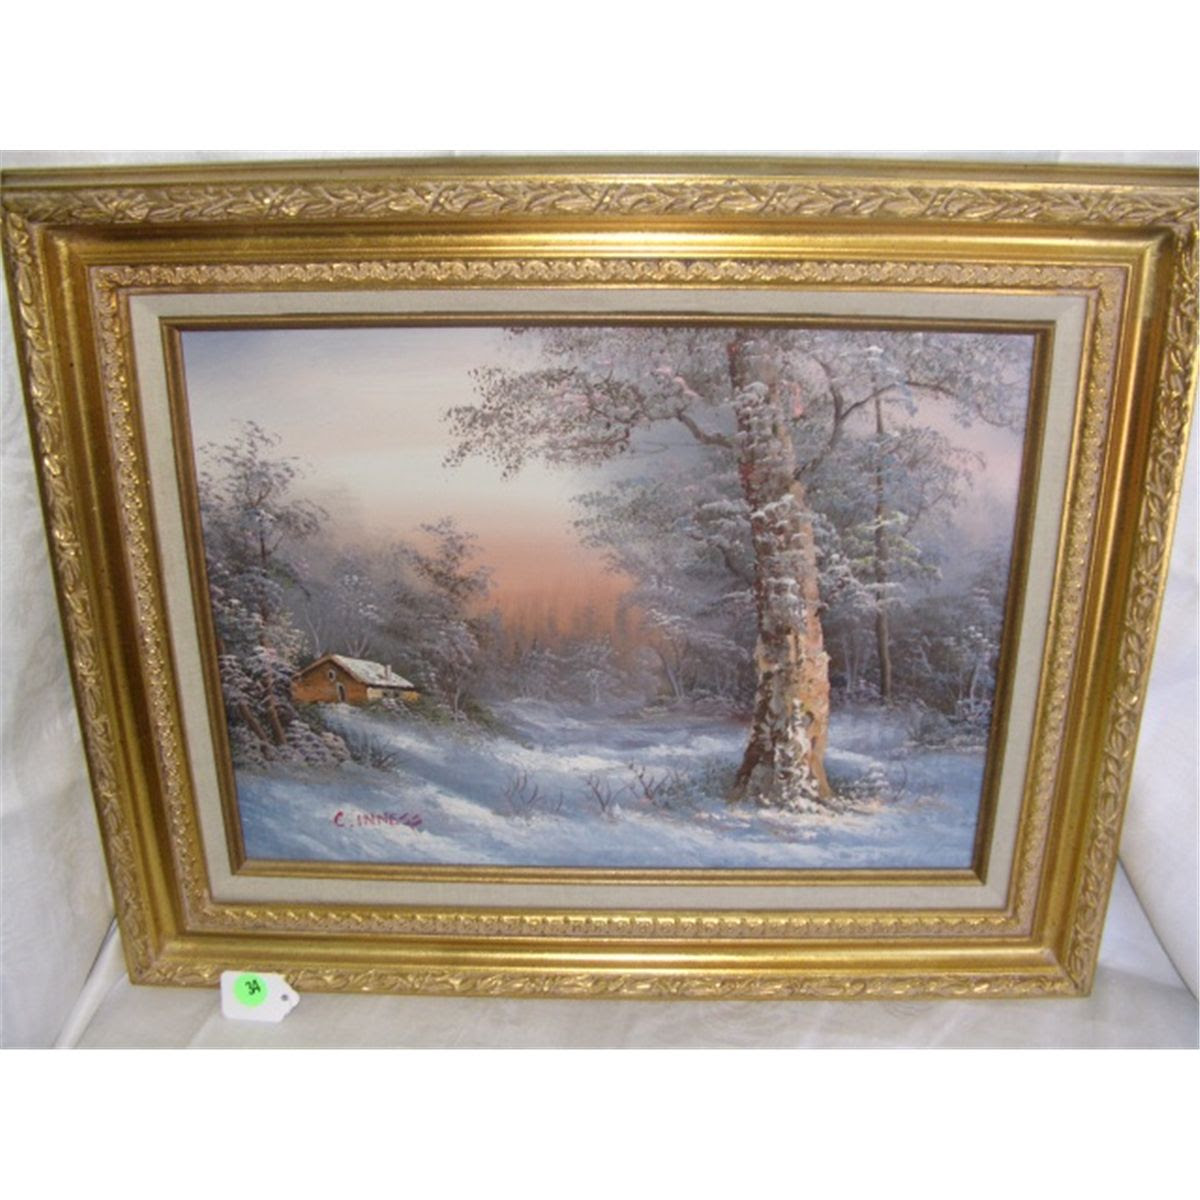 Nice Oil Painting On Canvas By C Inness Snowy Scene Cabin Frame Is